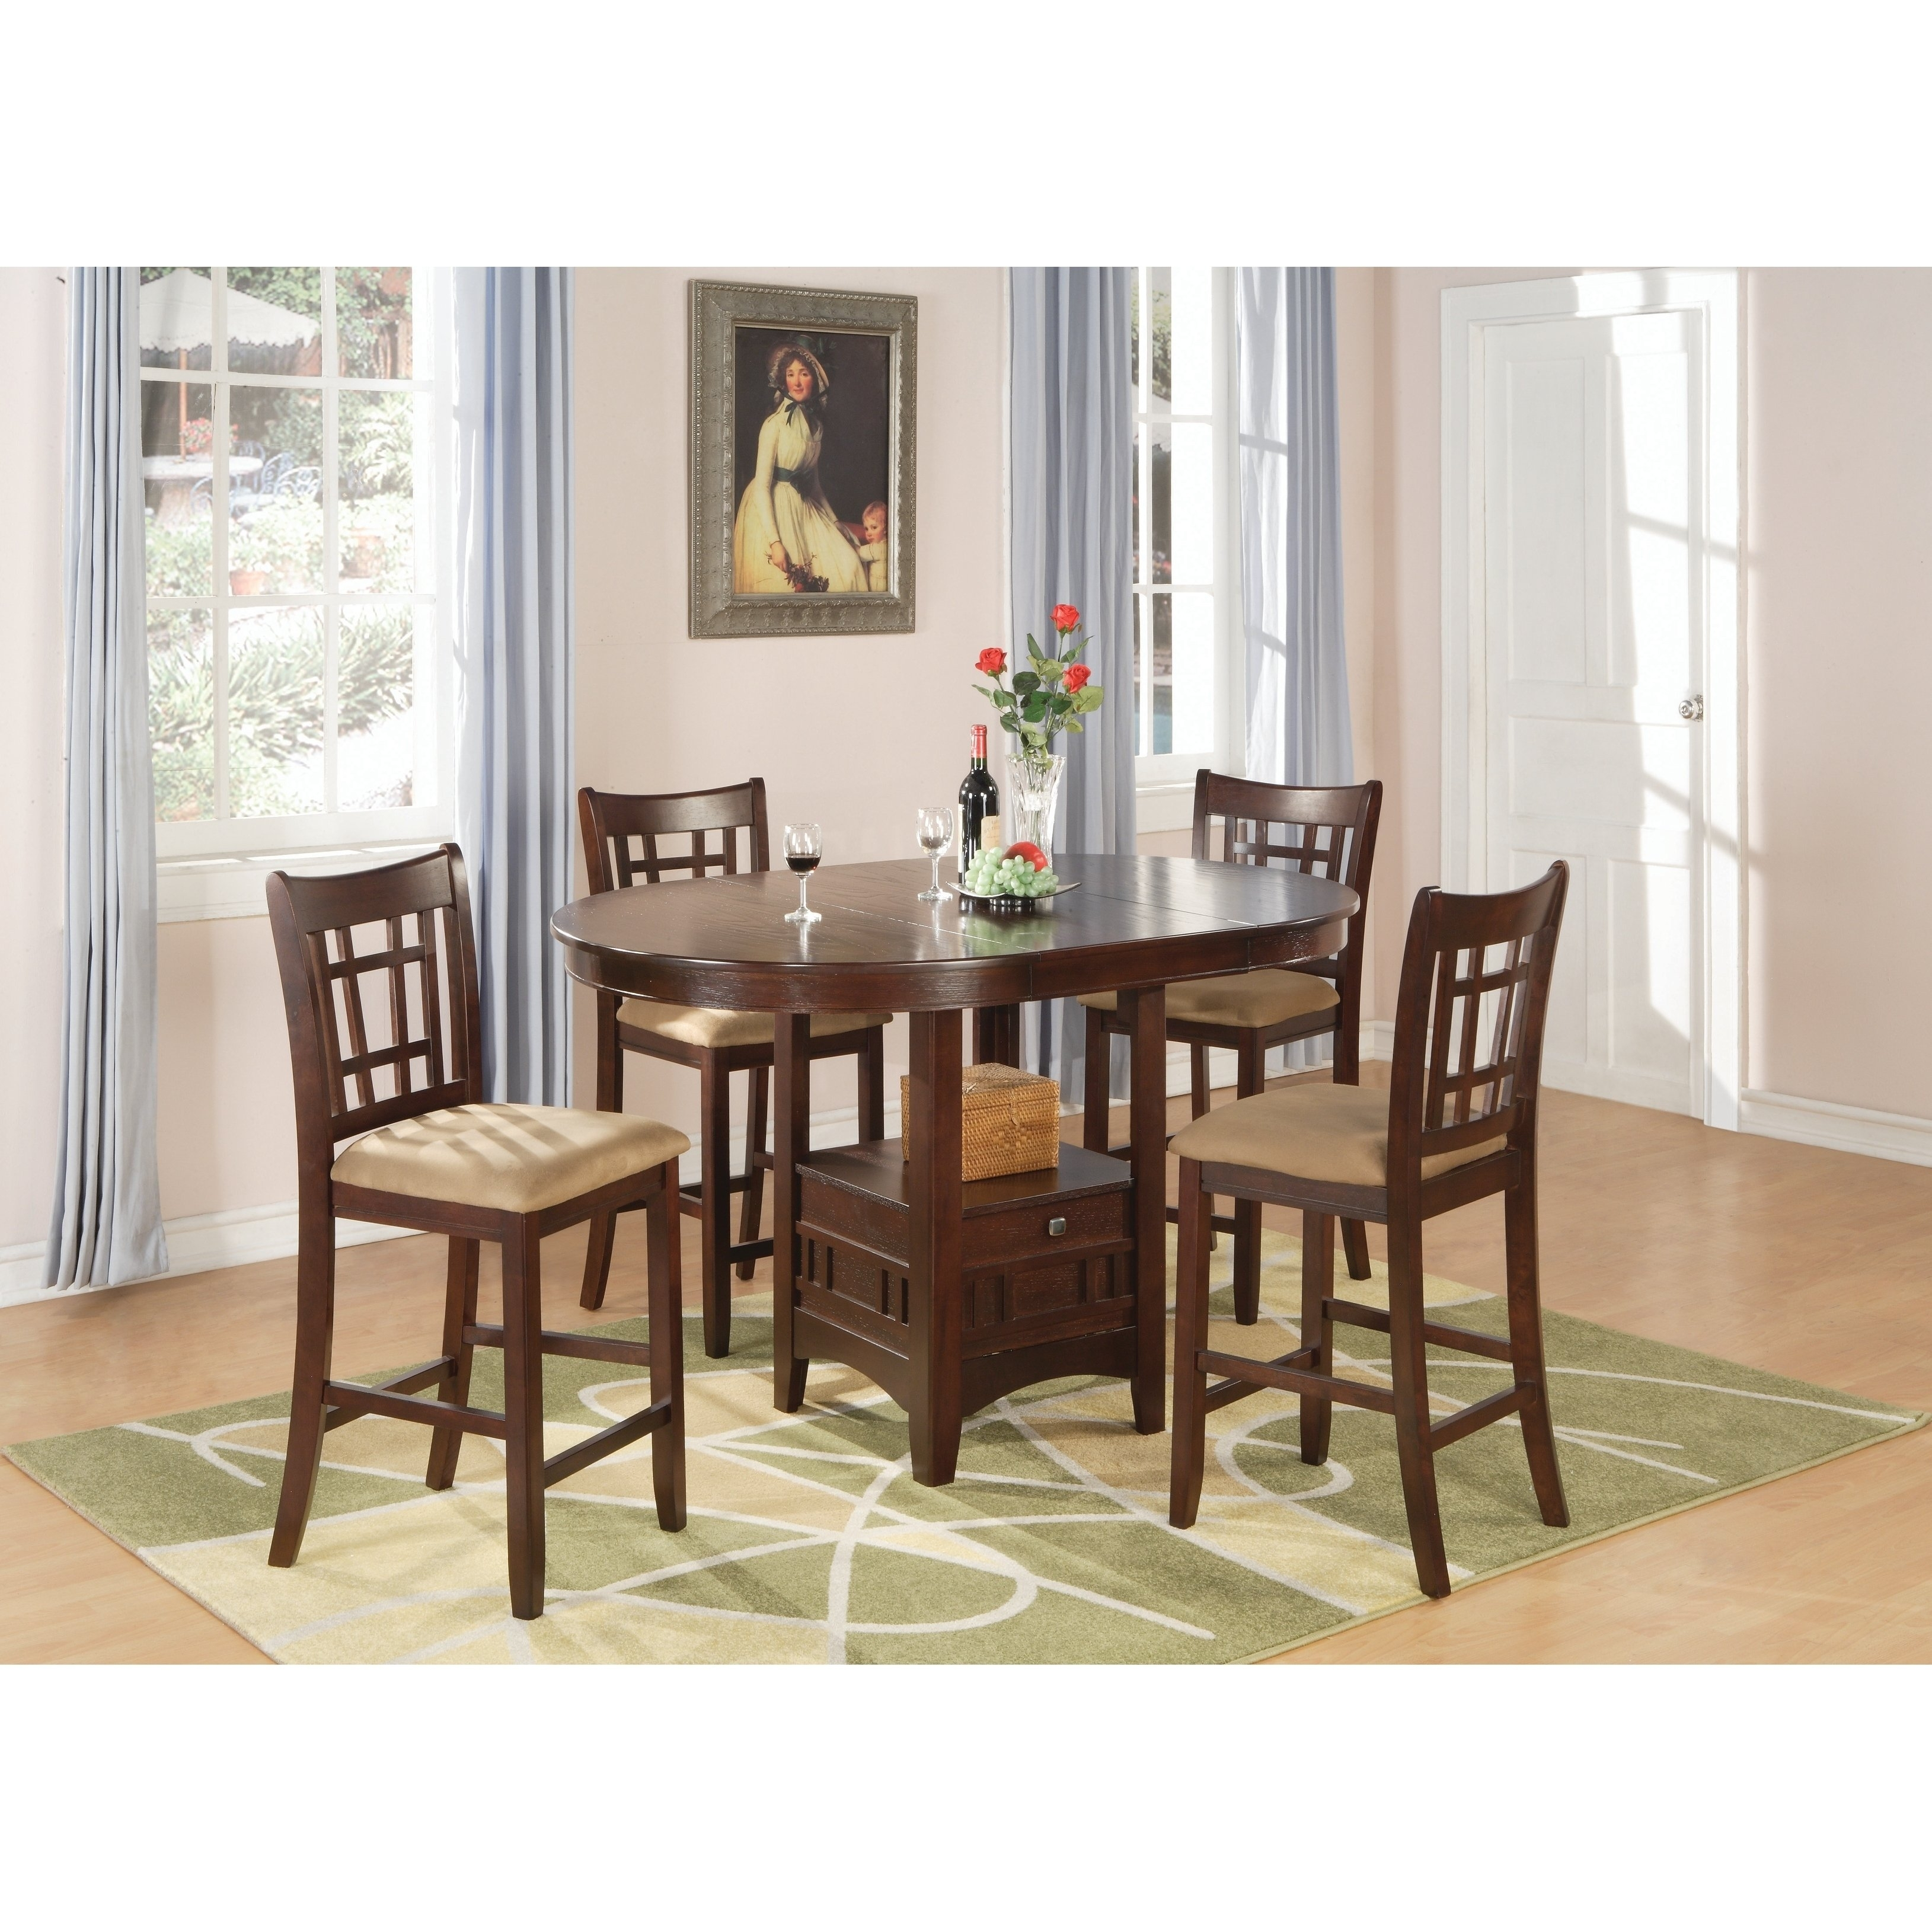 Lavon Transitional Warm Brown 5 Piece Counter Height Dining Set In Best And Newest Jaxon 5 Piece Extension Counter Sets With Fabric Stools (Photo 15 of 20)